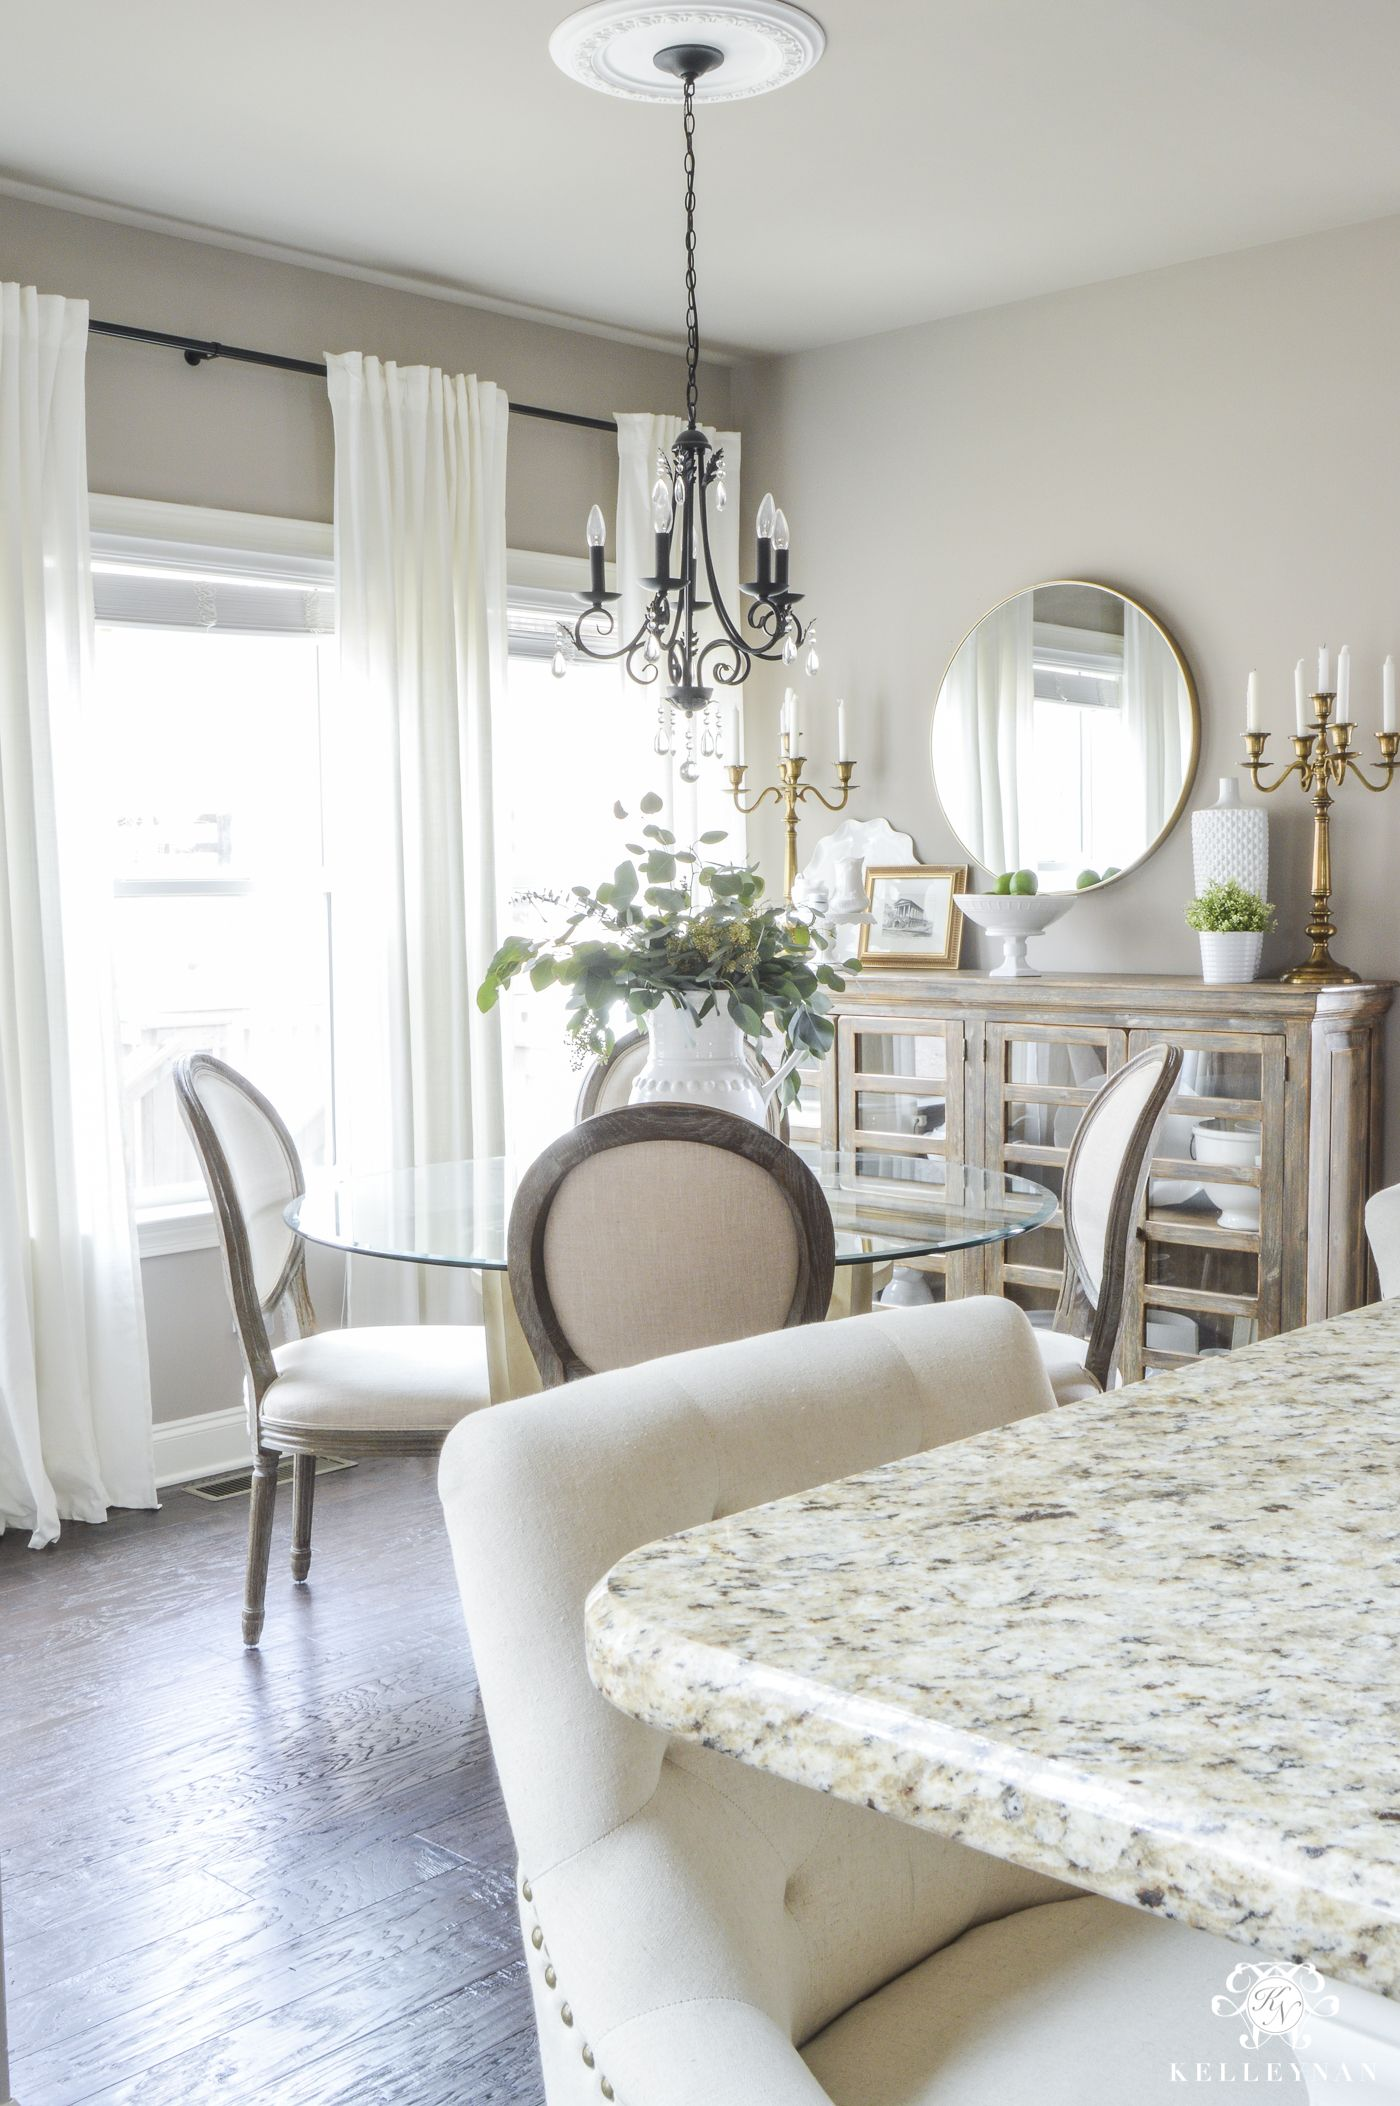 Updated Breakfast Nook A Lighter Brighter Look Kelley Nan Greige Living Room Greige Walls French Country Living Room